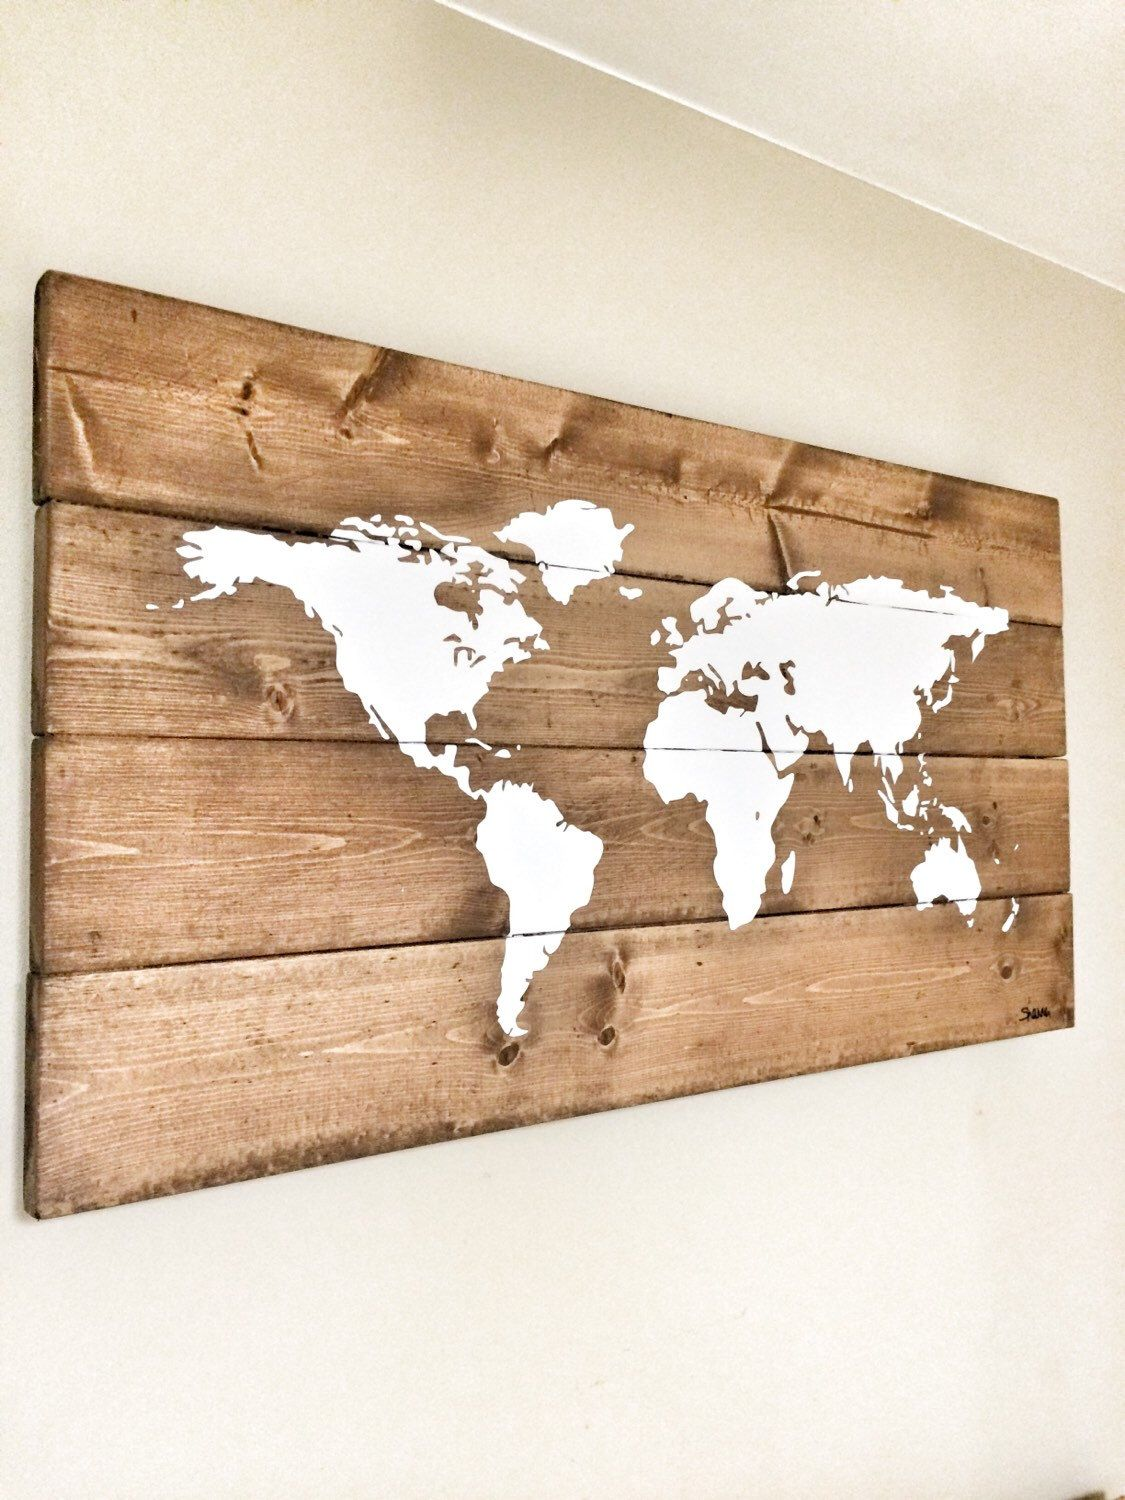 Rustic wood world map rustic decor farmhouse decor rustic rustic wood world map rustic decor farmhouse decor rustic nursery decor wall gumiabroncs Image collections